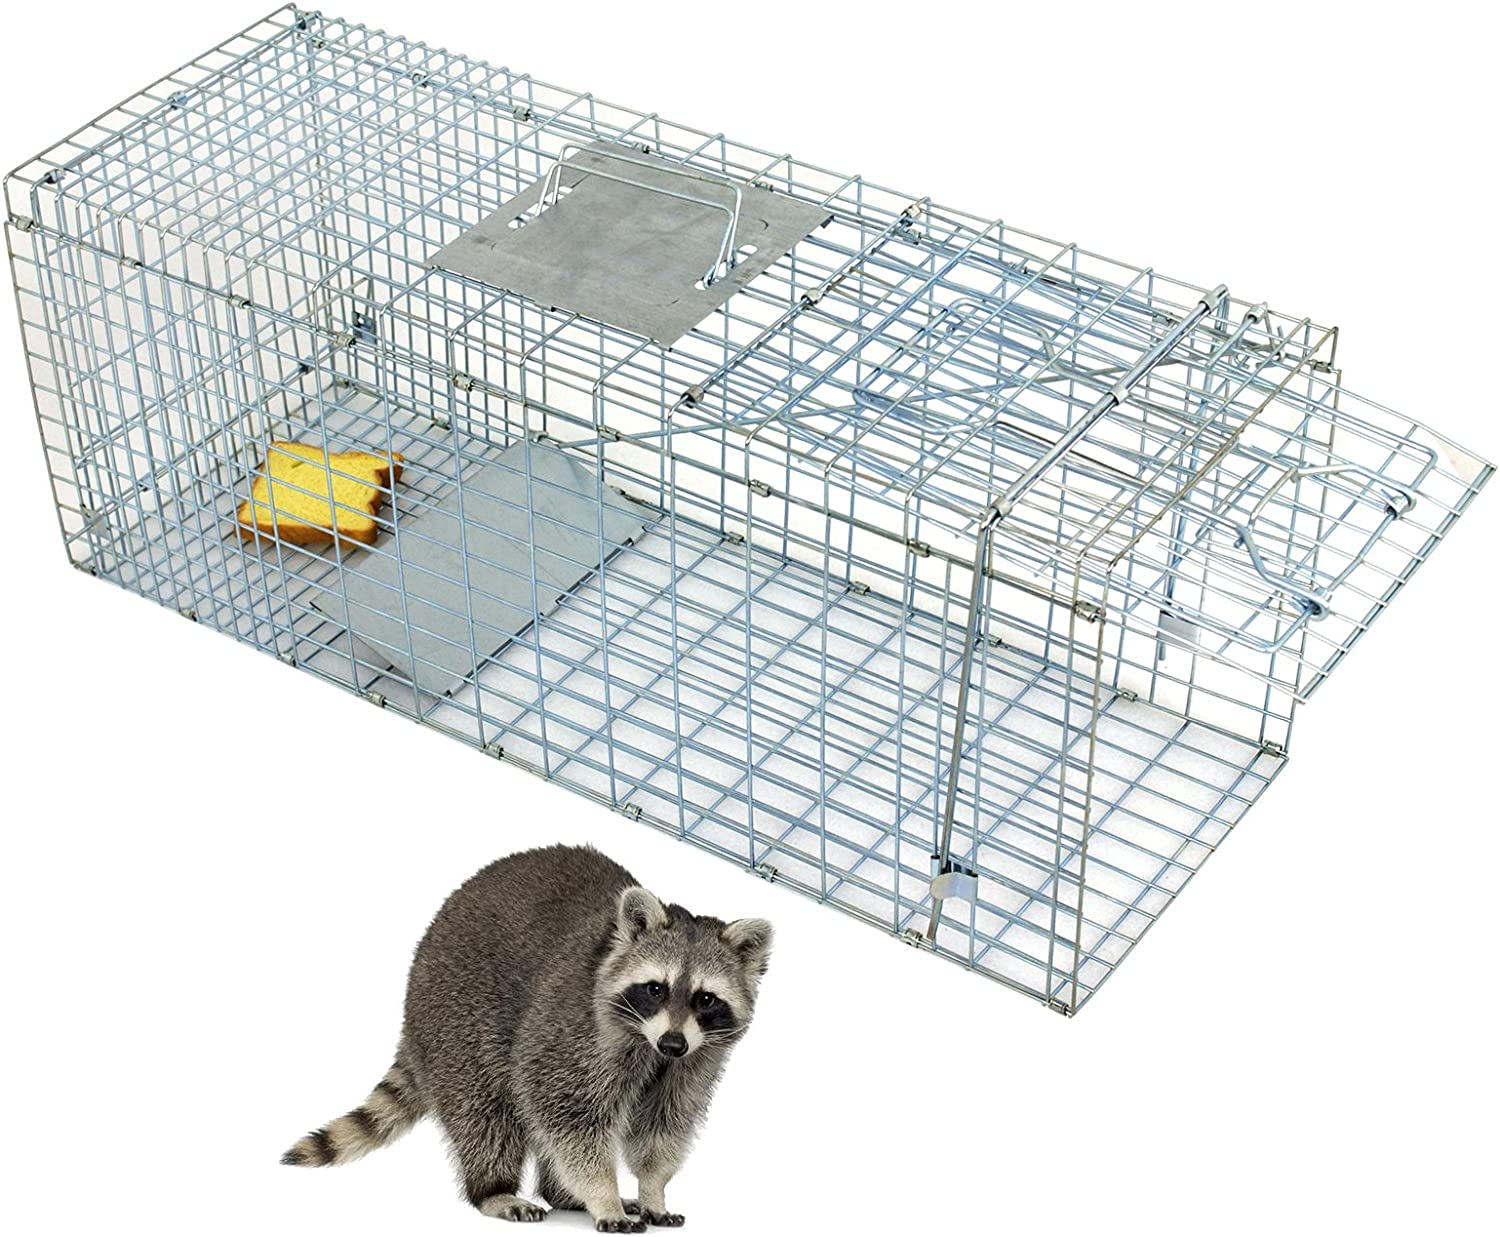 Saturnpower Live Animal Trap Cage Steel Max 83% OFF specialty shop Release Catch Human